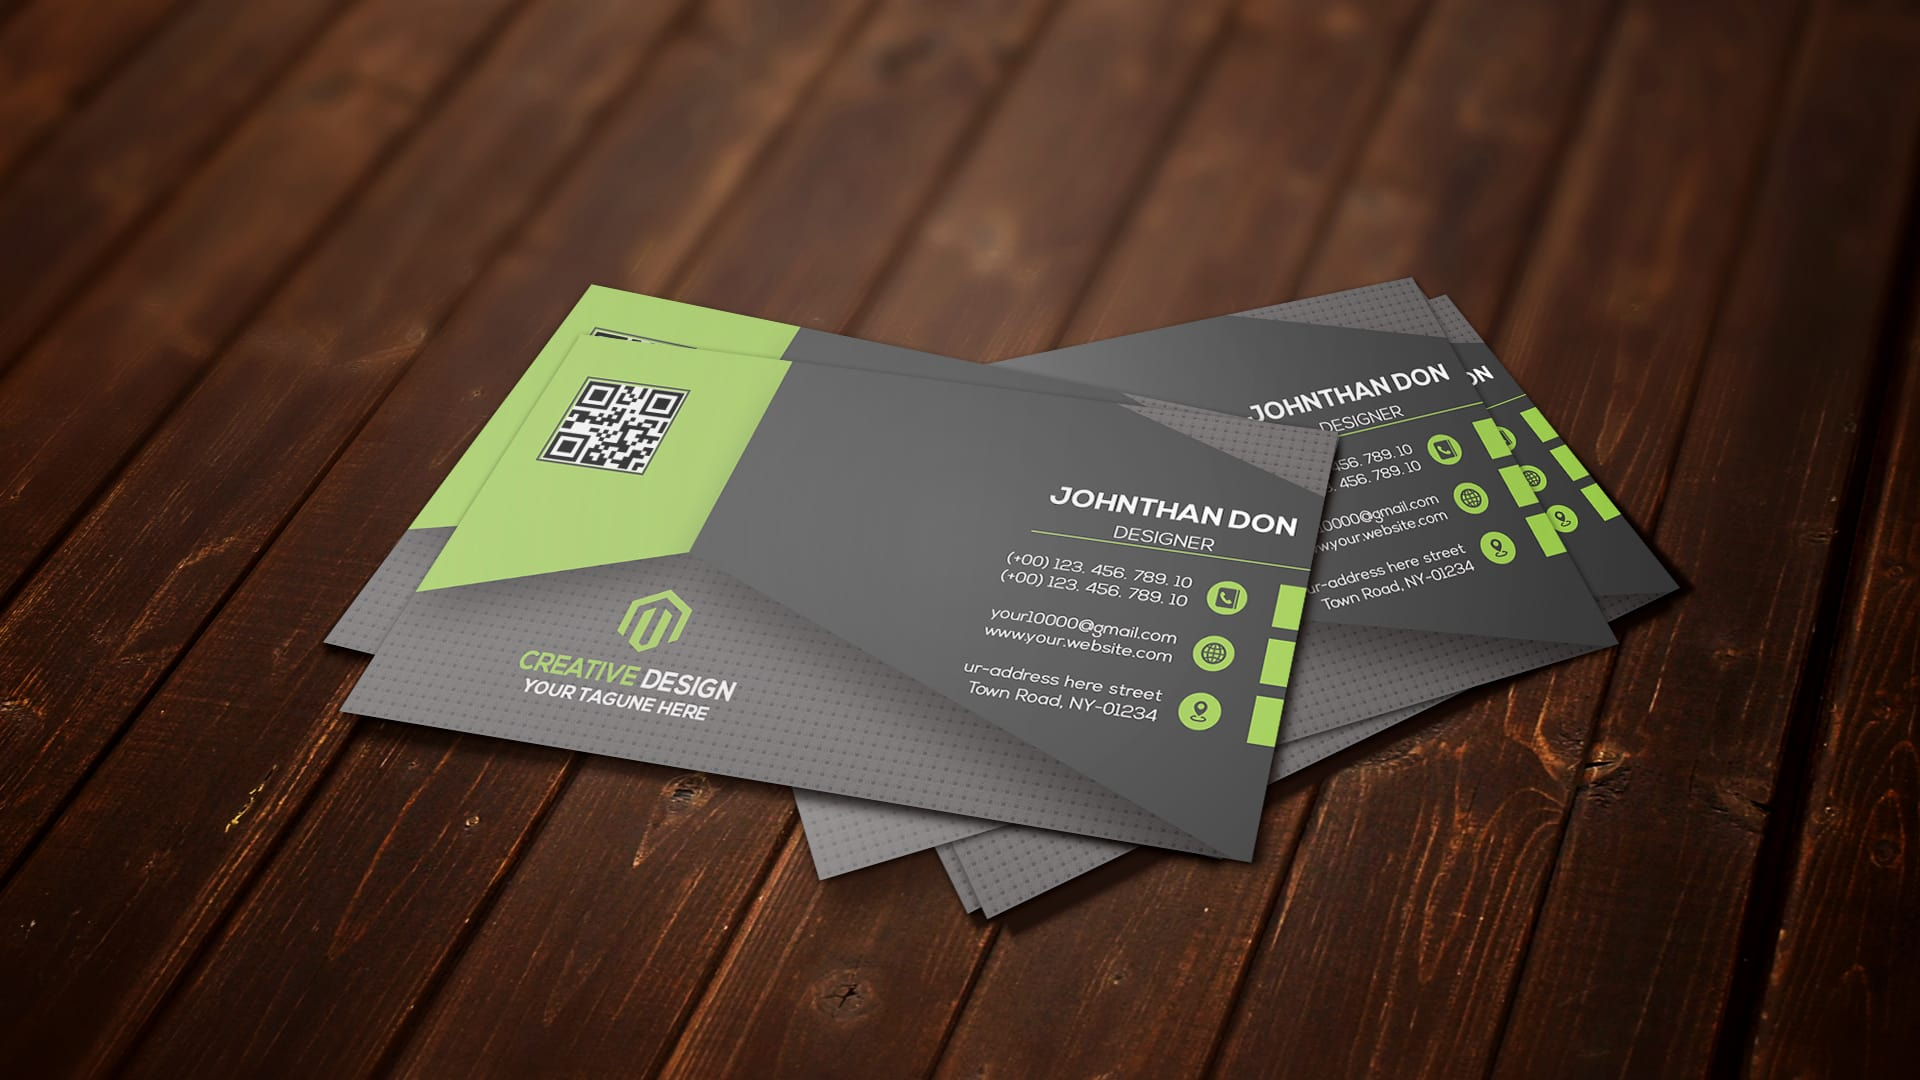 Design professional business card with creative idea by Hrhasan96